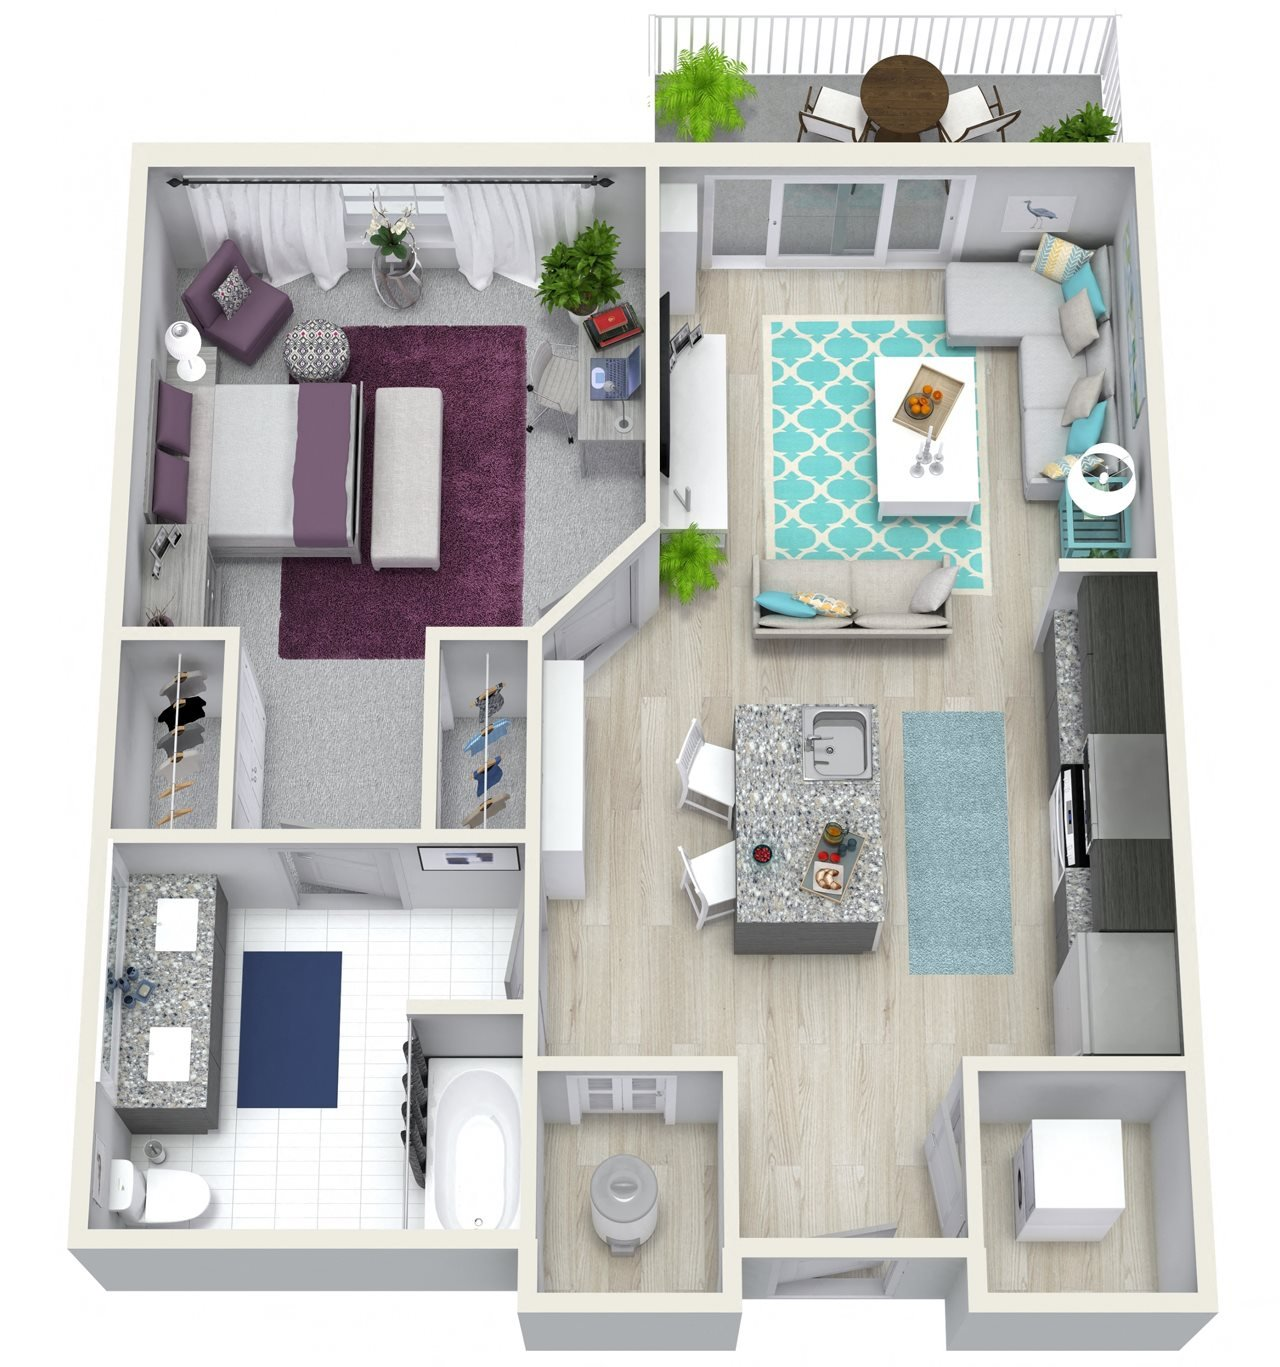 Ivy Club Apartments: Floor Plans Of Channel Club Apartments In Tampa, FL